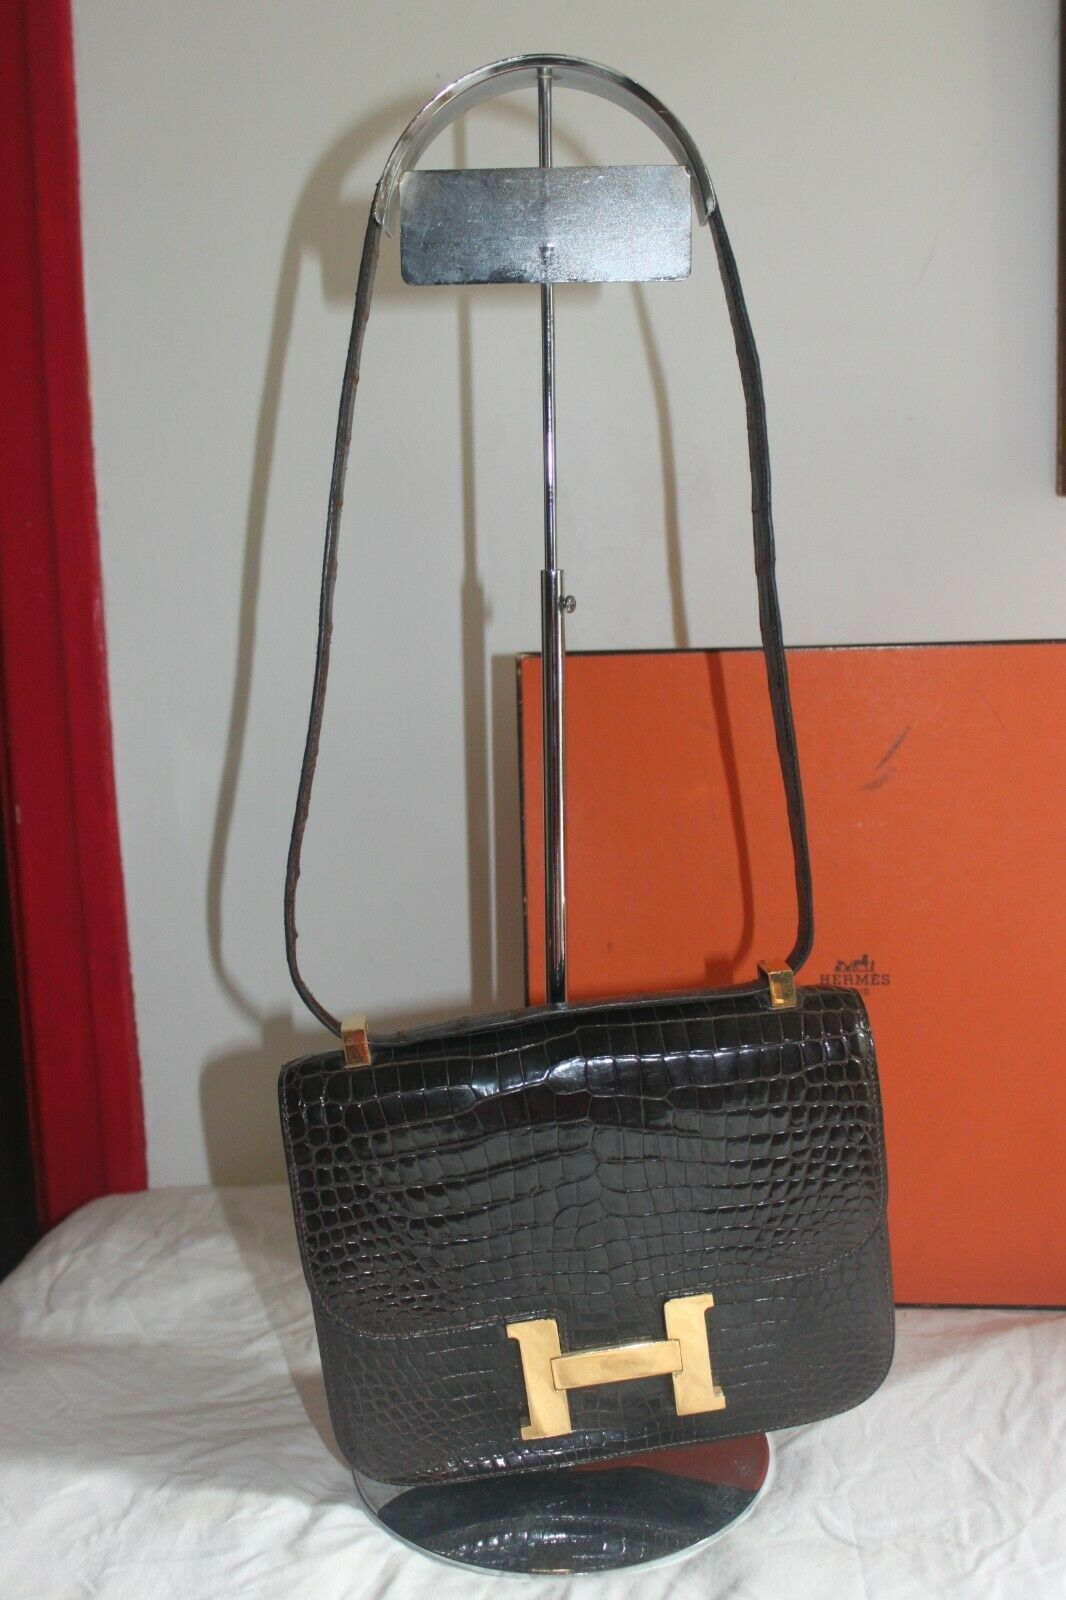 Sac hermes constance alligator